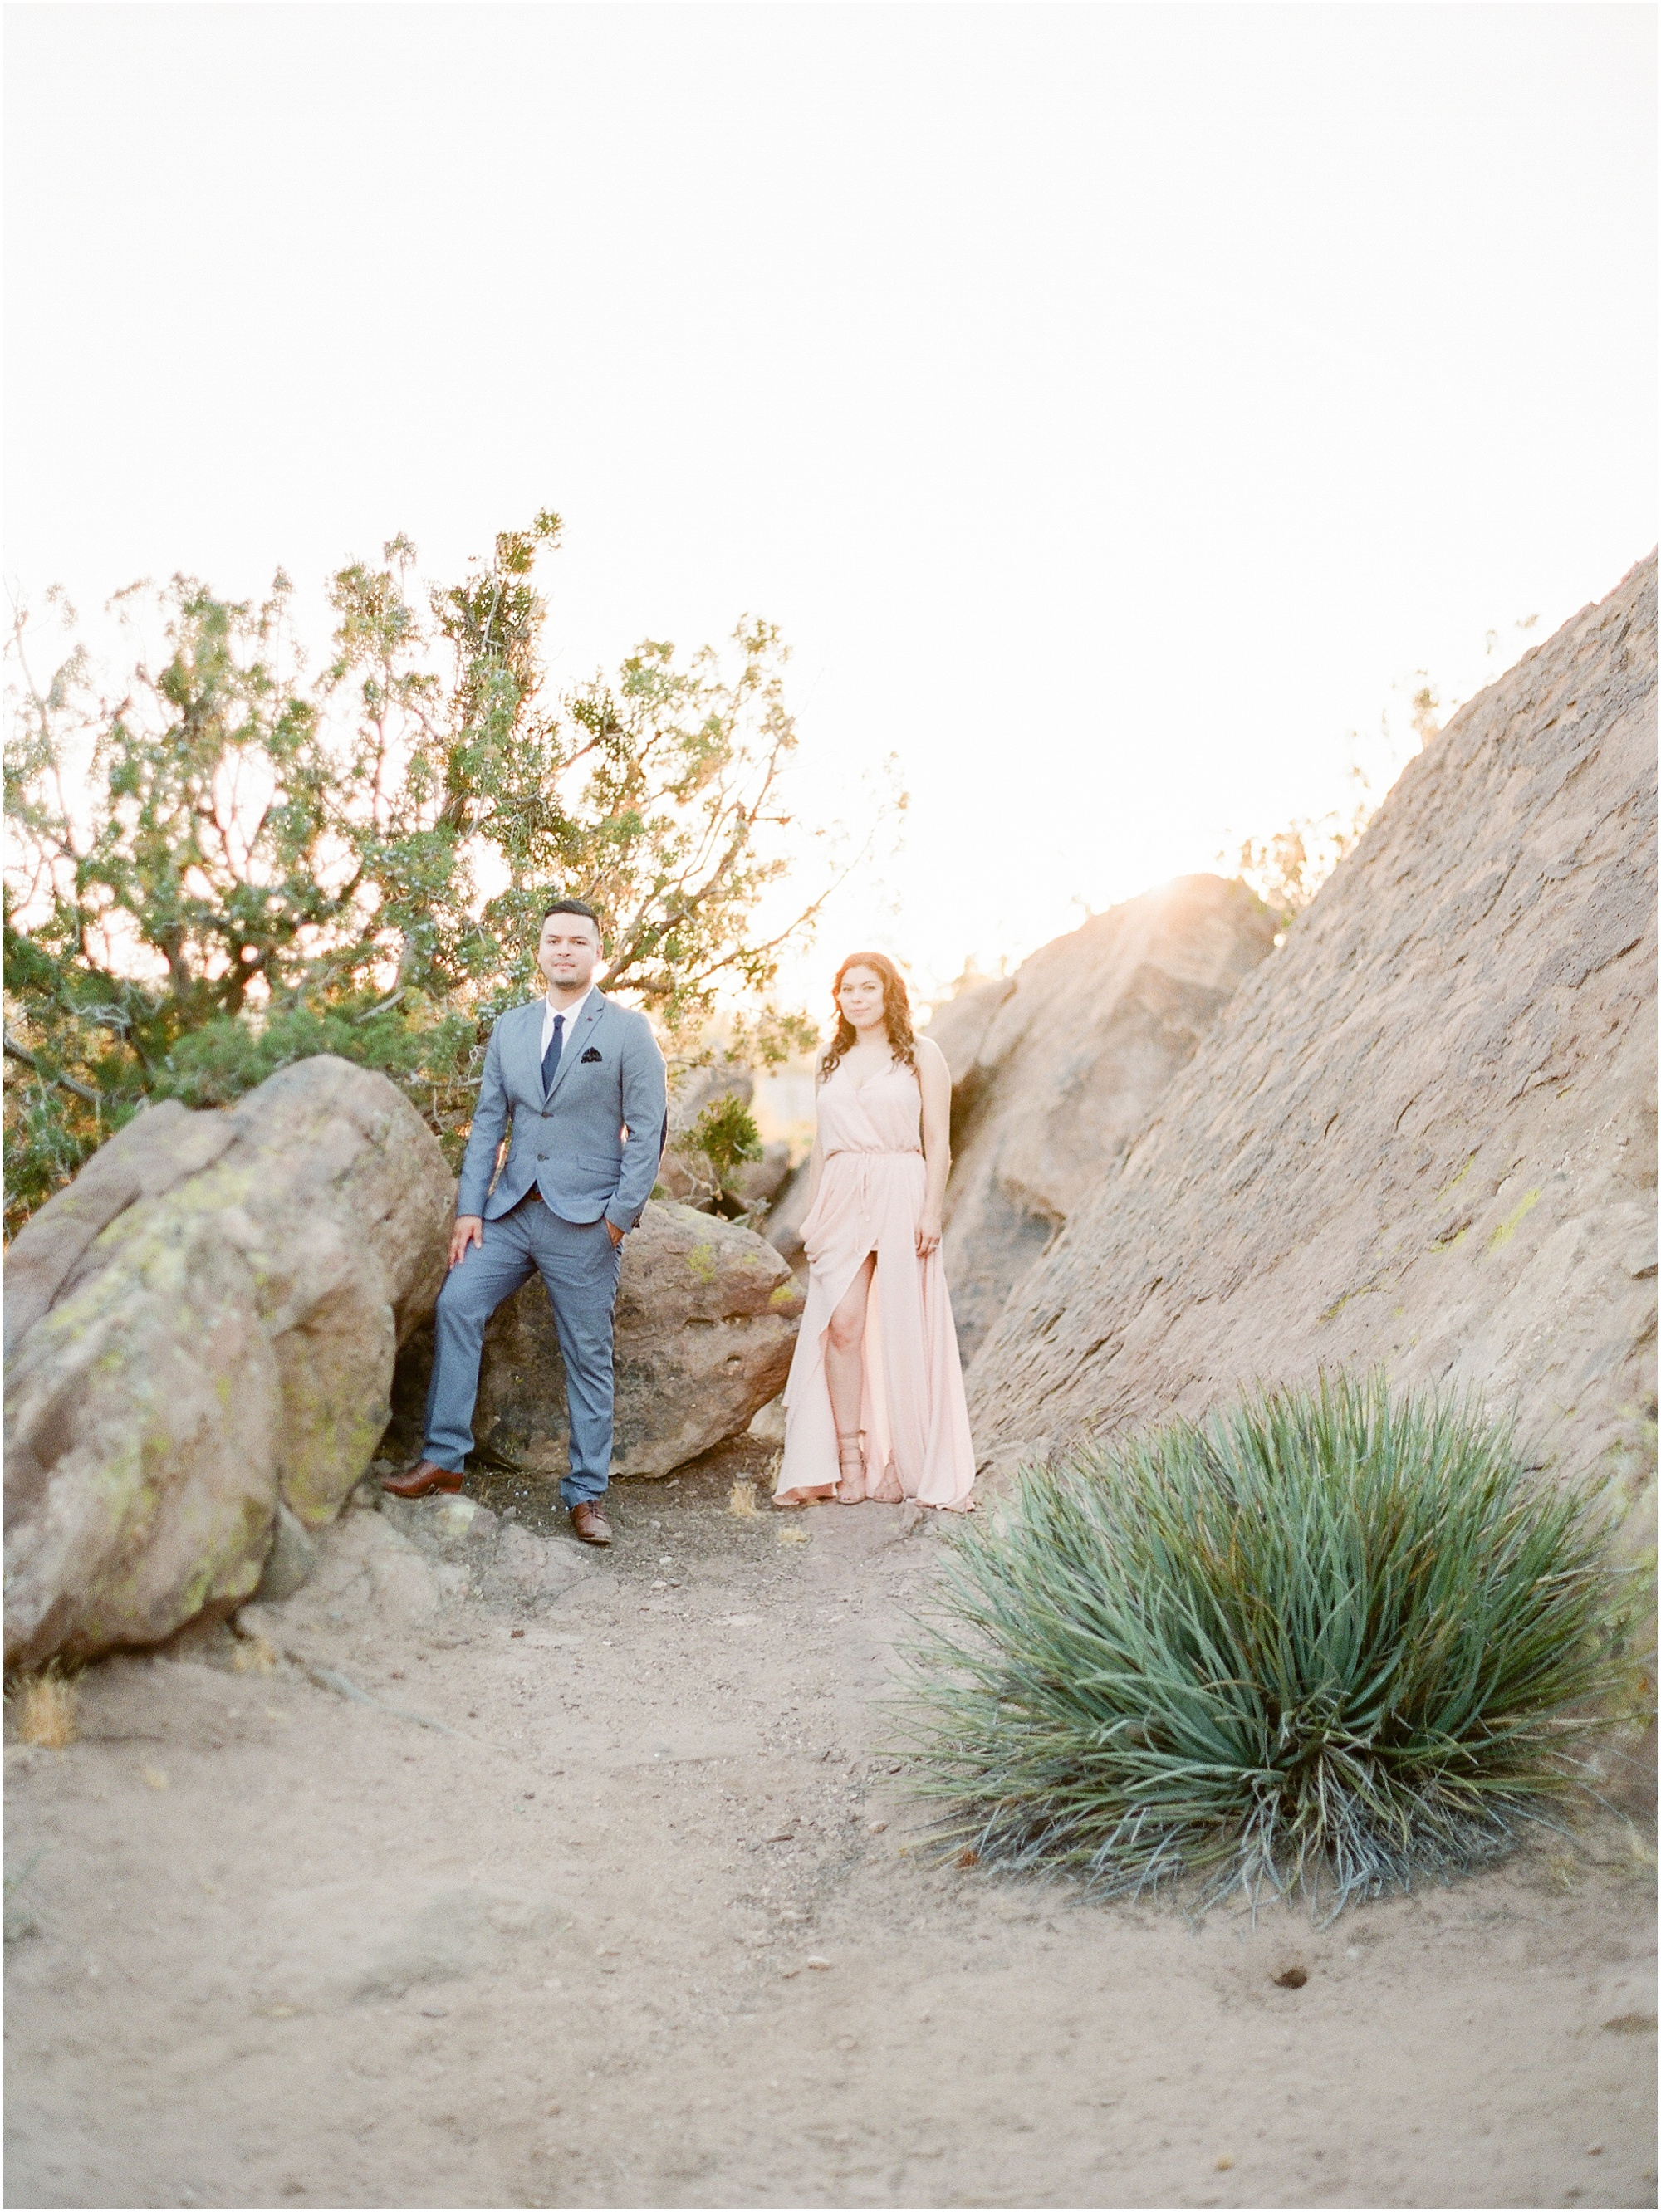 Vasquez-rocks-engagement-session-66.jpg